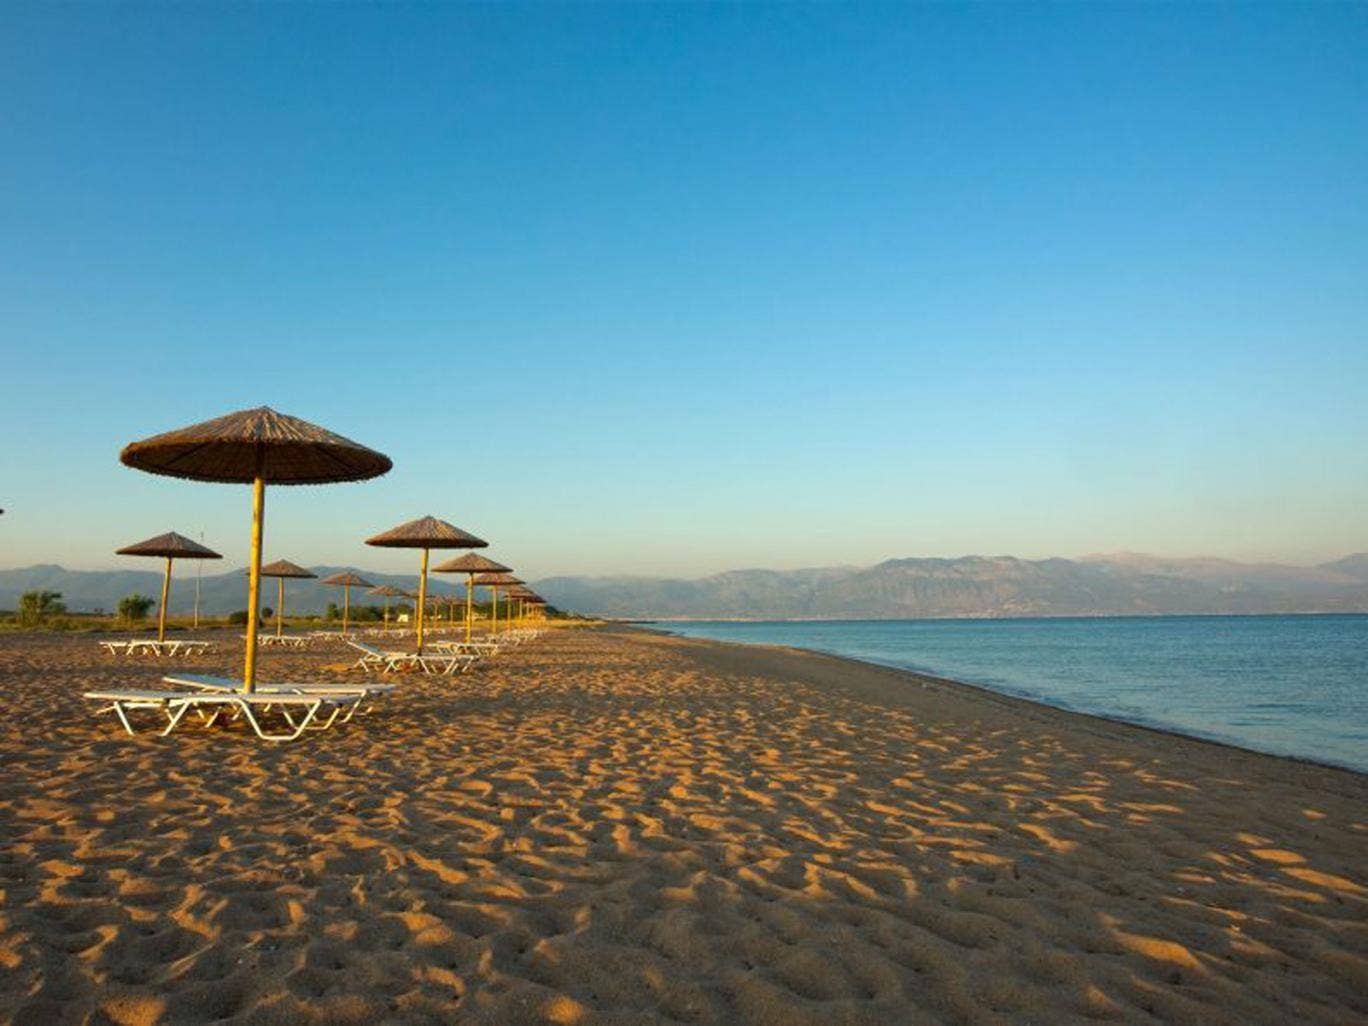 The Messini Beach Club in Greece offers a range of watersports